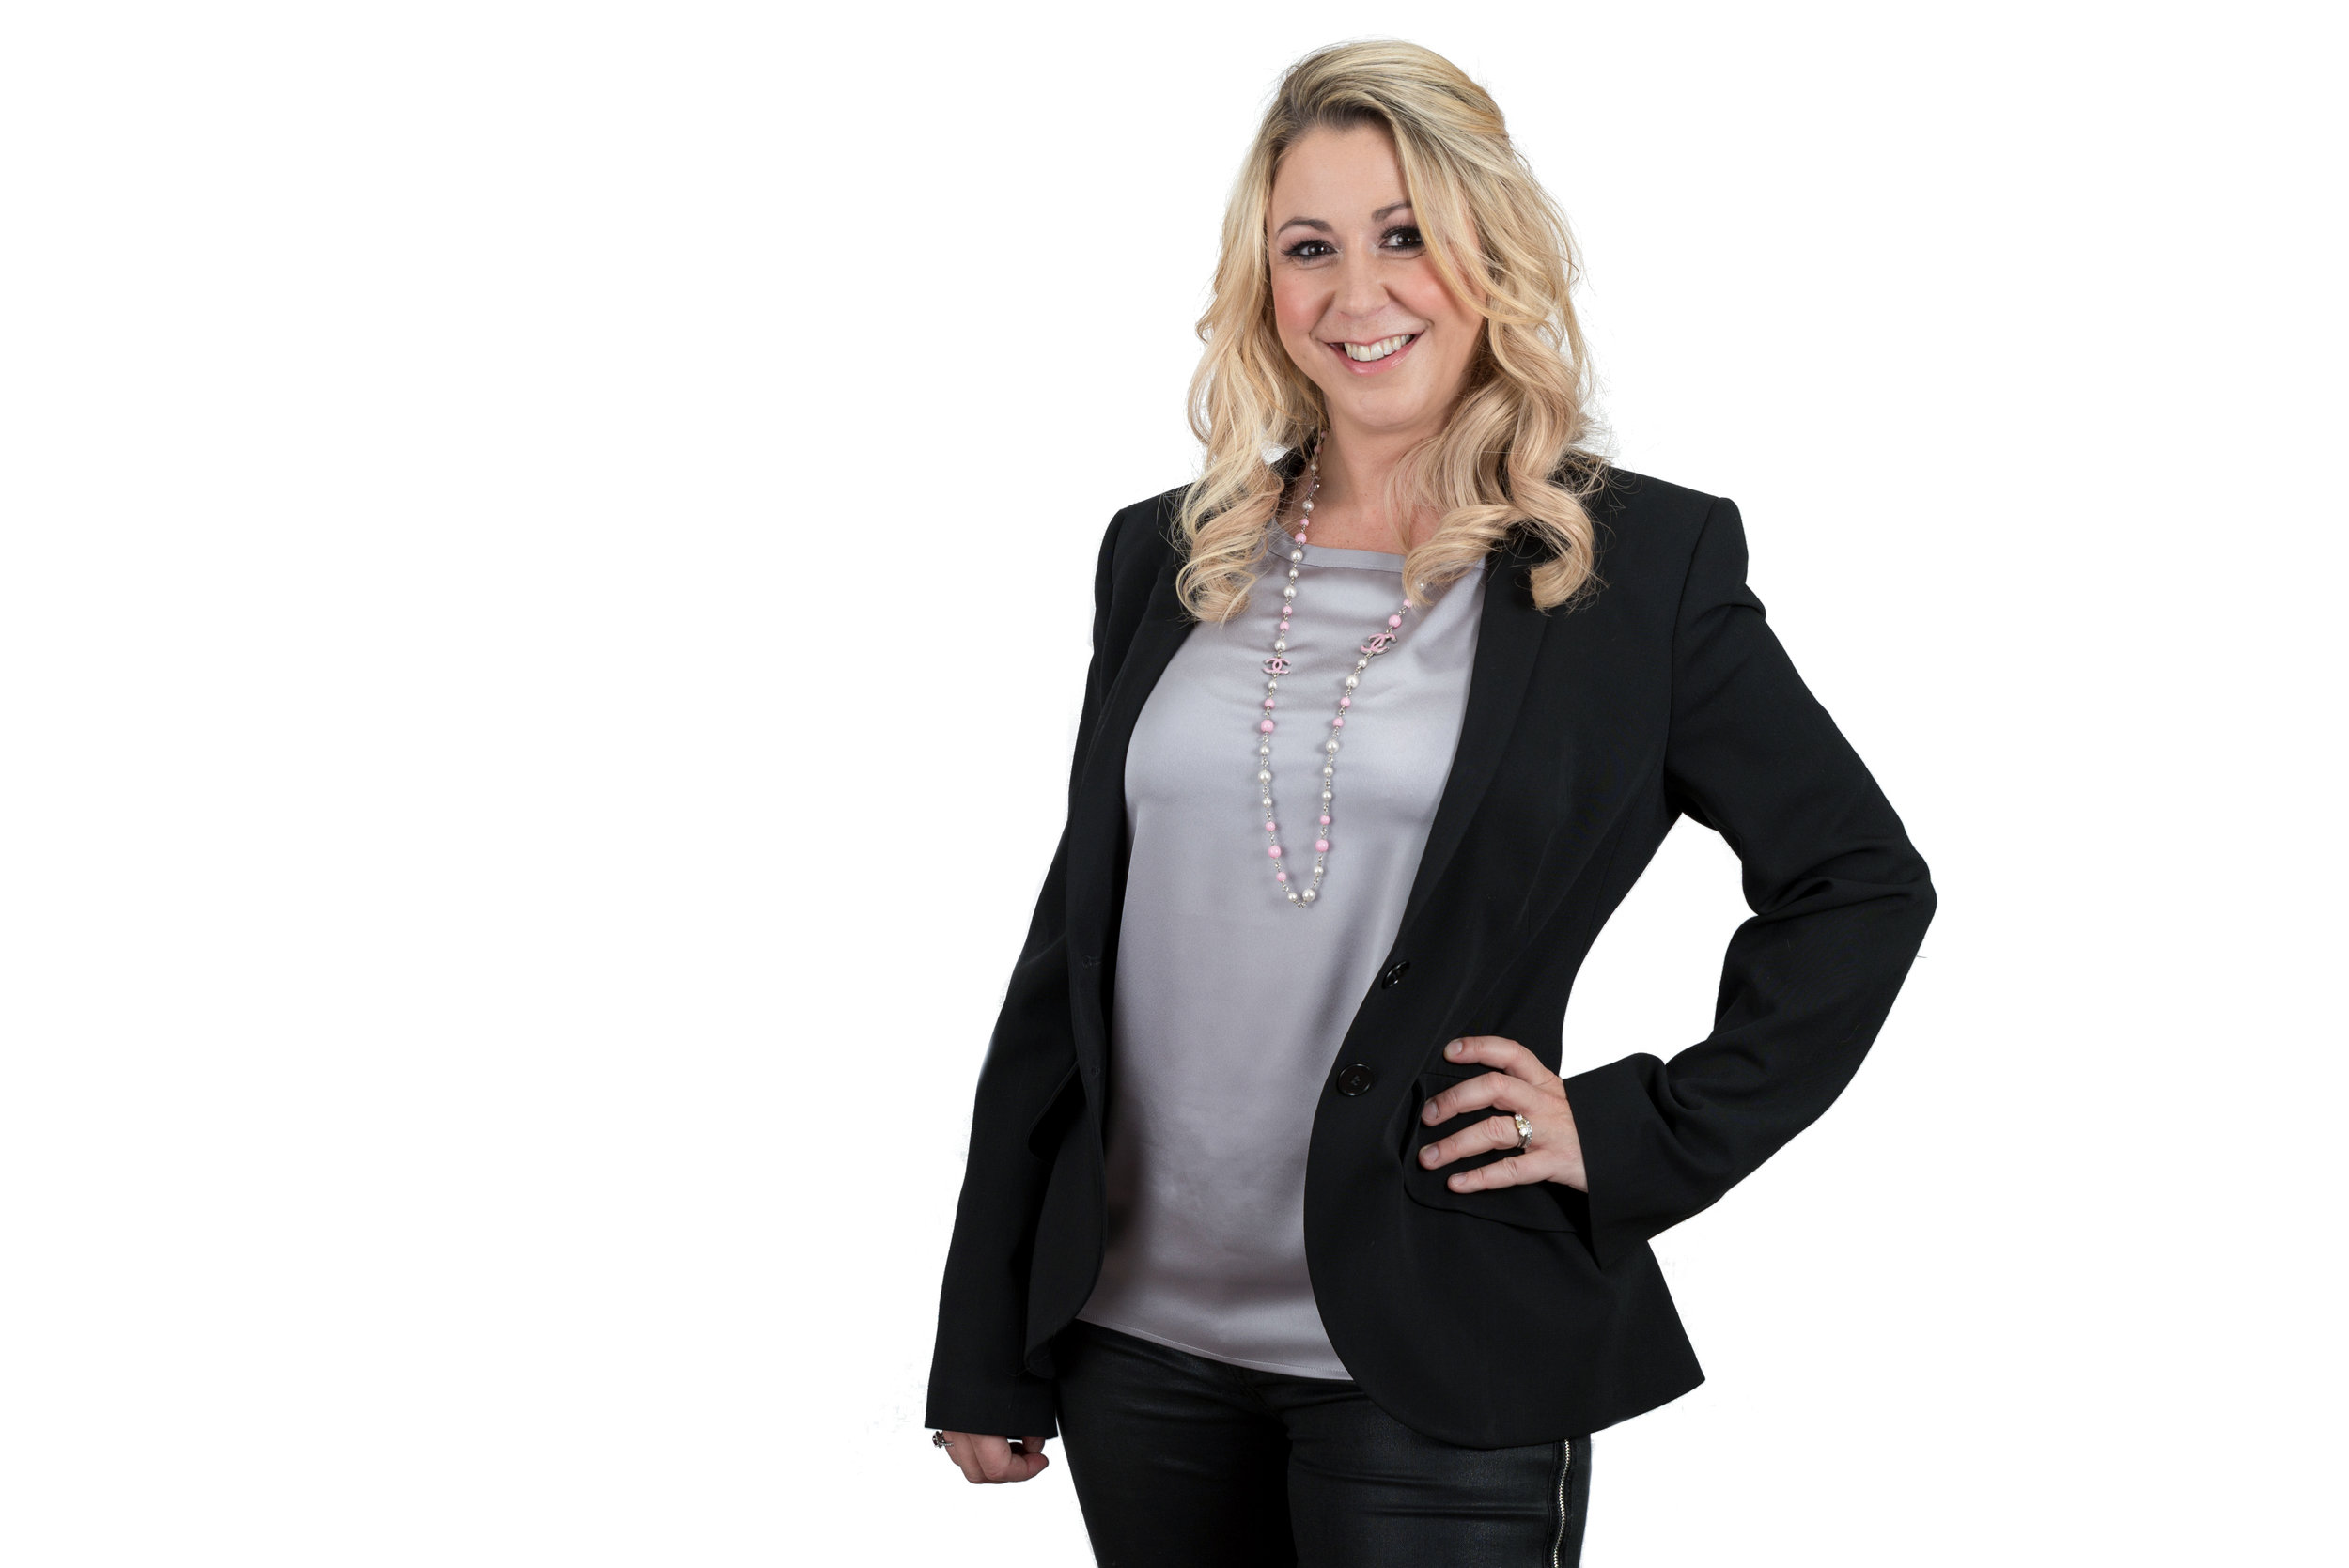 Businesswoman Portrait Photo Wearing black Jacket and necklace